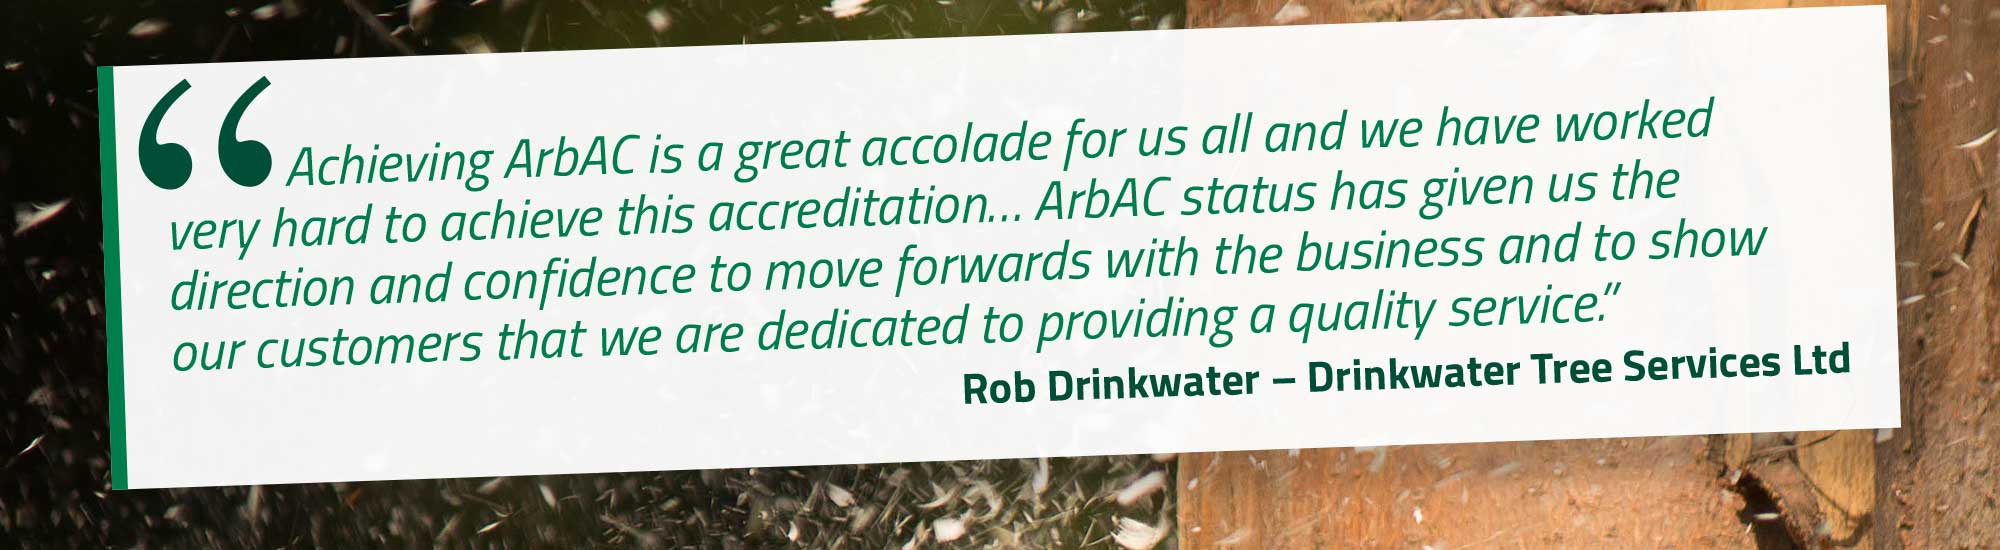 Achieving ArbAC is a great accolade for us all and we have worked very hard to achieve this accreditation… ArbAC status has given us the direction and confidence to move forwards with the business and to show our customers that we are dedicated to providing a quality service. Rob Drinkwater – Drinkwater Tree Services Ltd